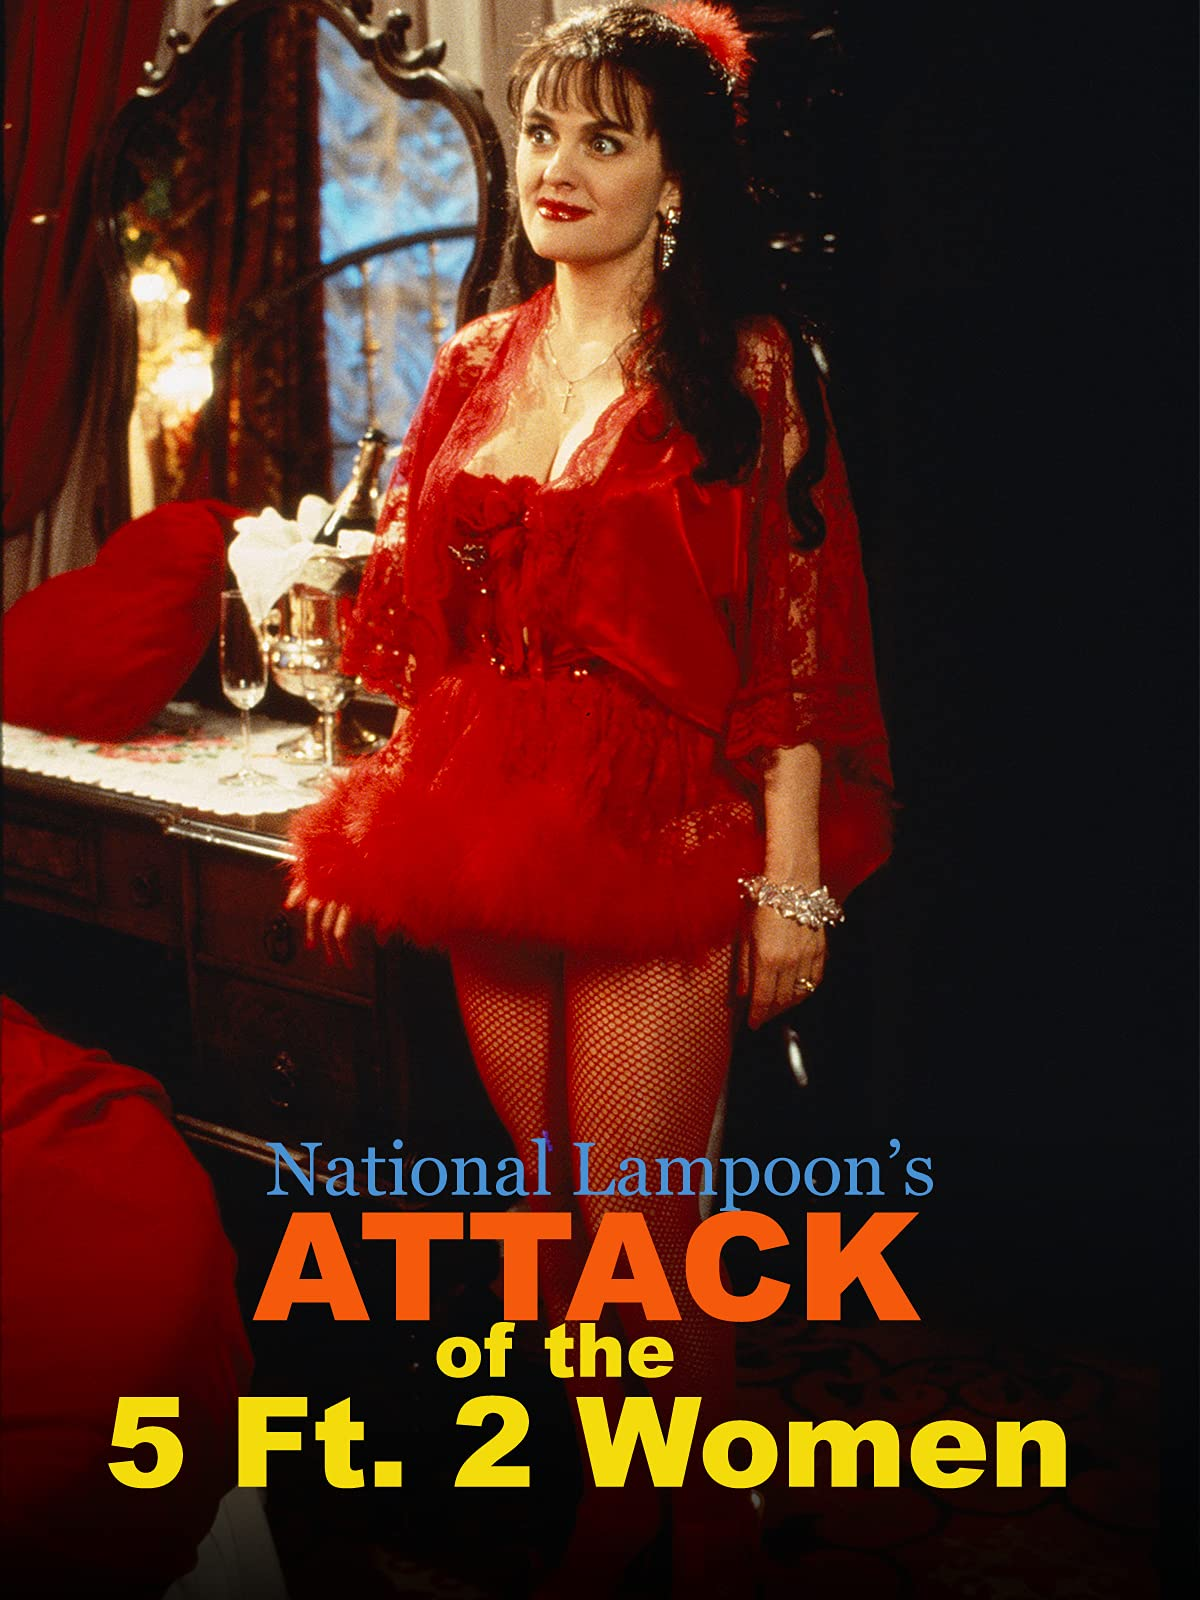 National Lampoon's - Attack of the 5 Ft. 2 Women